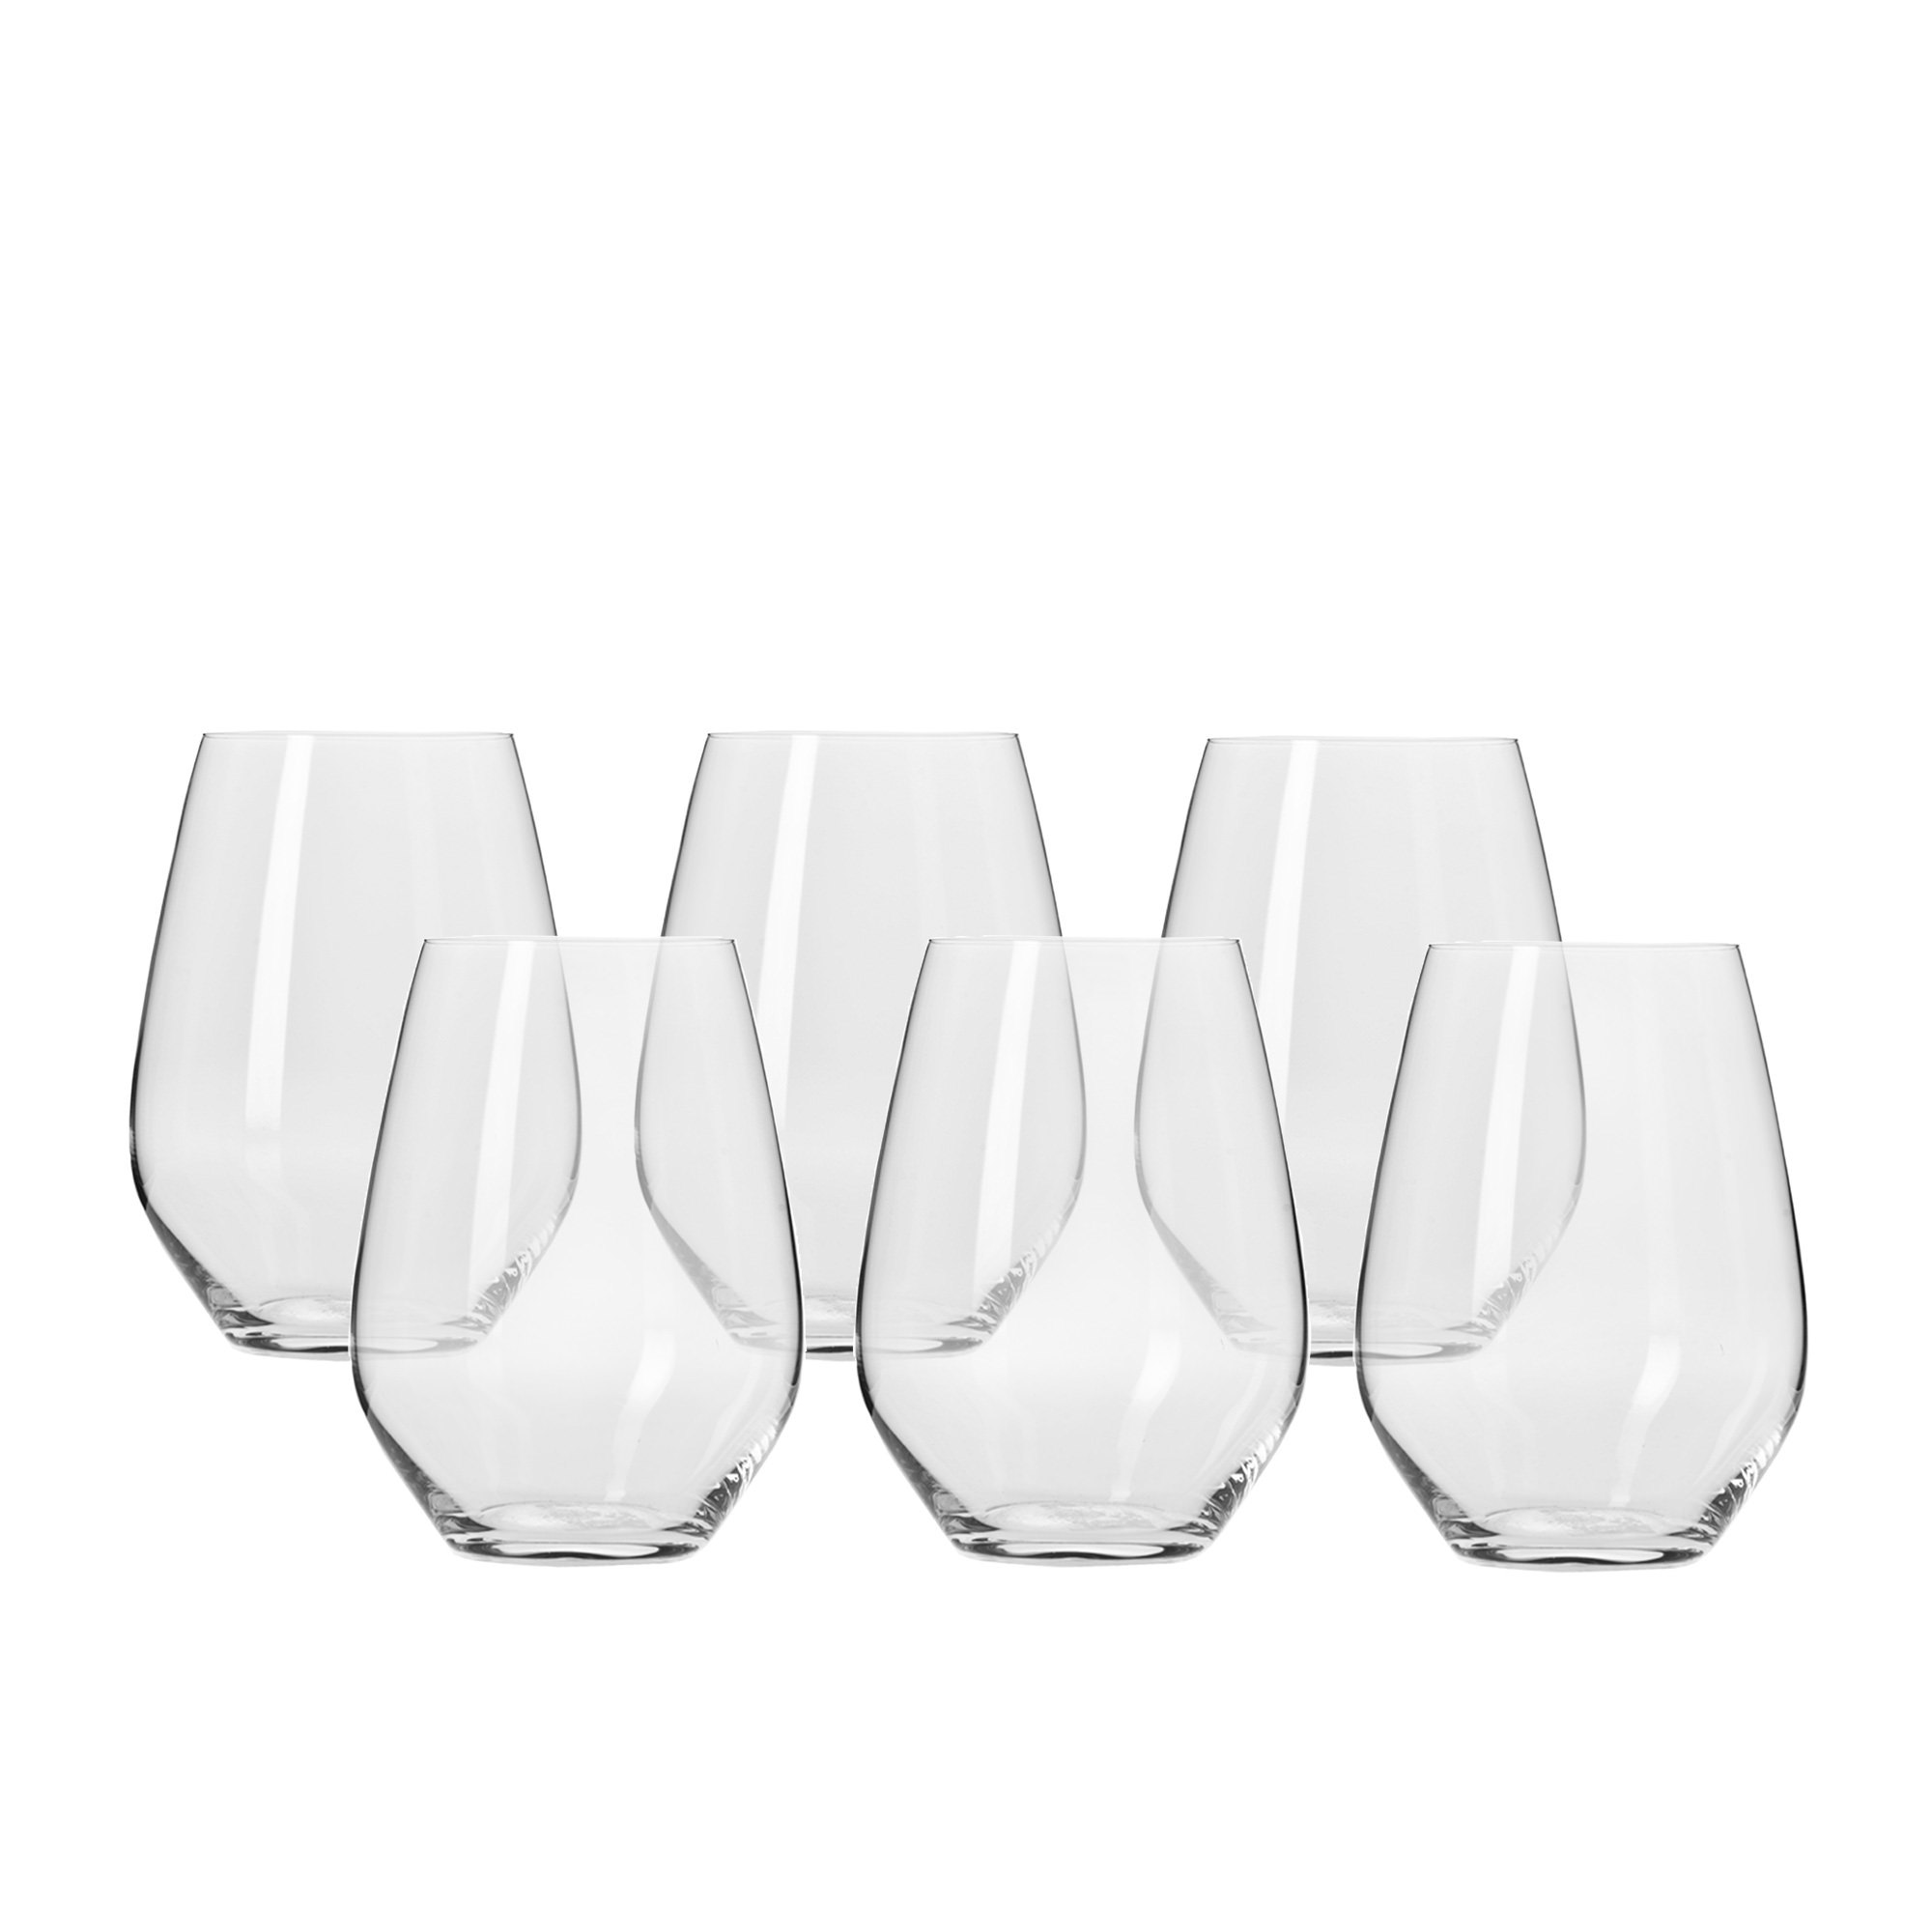 Krosno Harmony Stemless Wine Glass 540ml Set of 6